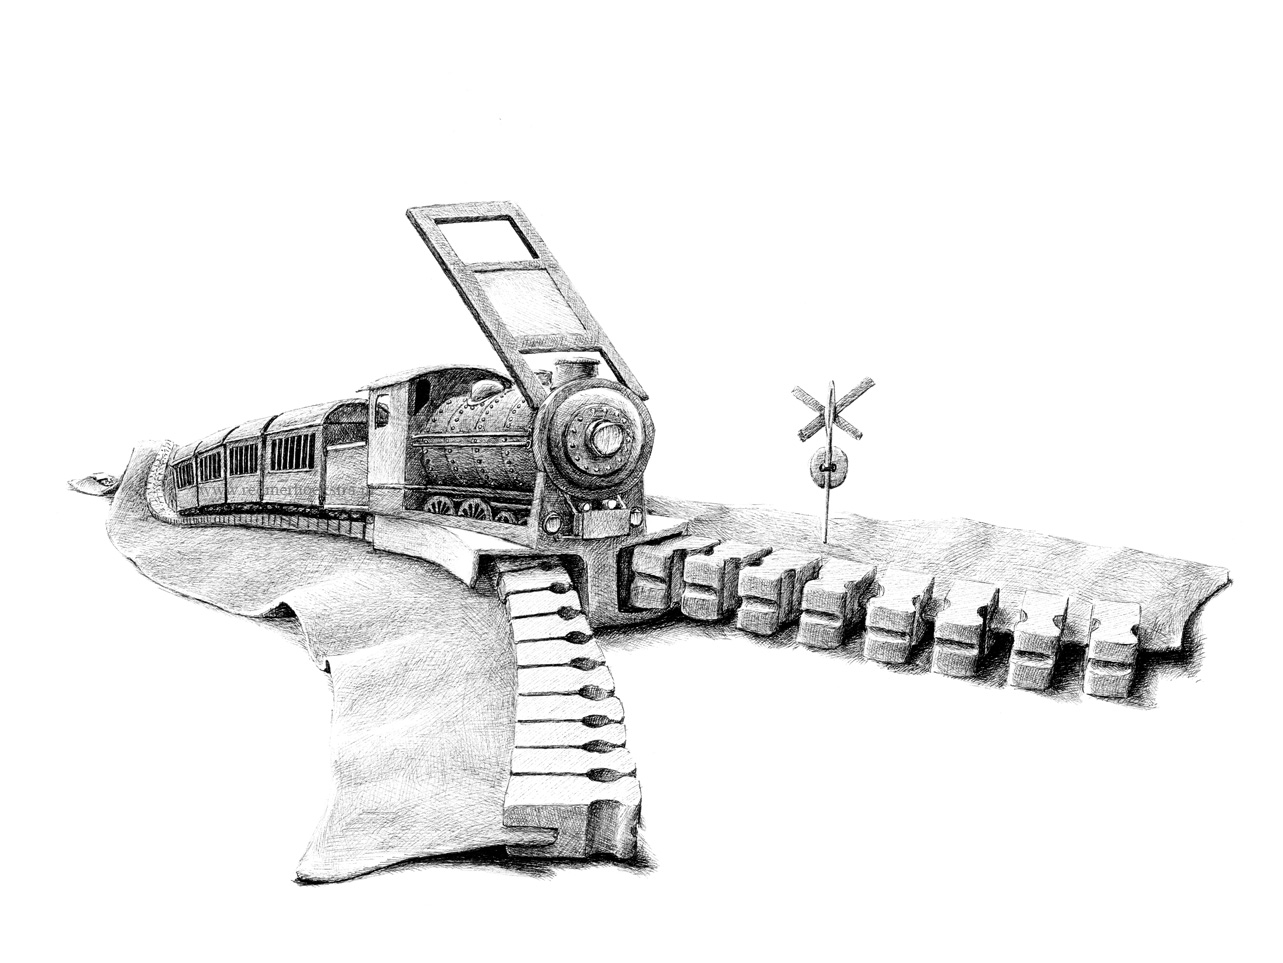 14-Train-Zip-Redmer-Hoekstra-Drawing-Fantastic-and-Surreal-World-of-Hoekstra-www-designstack-co